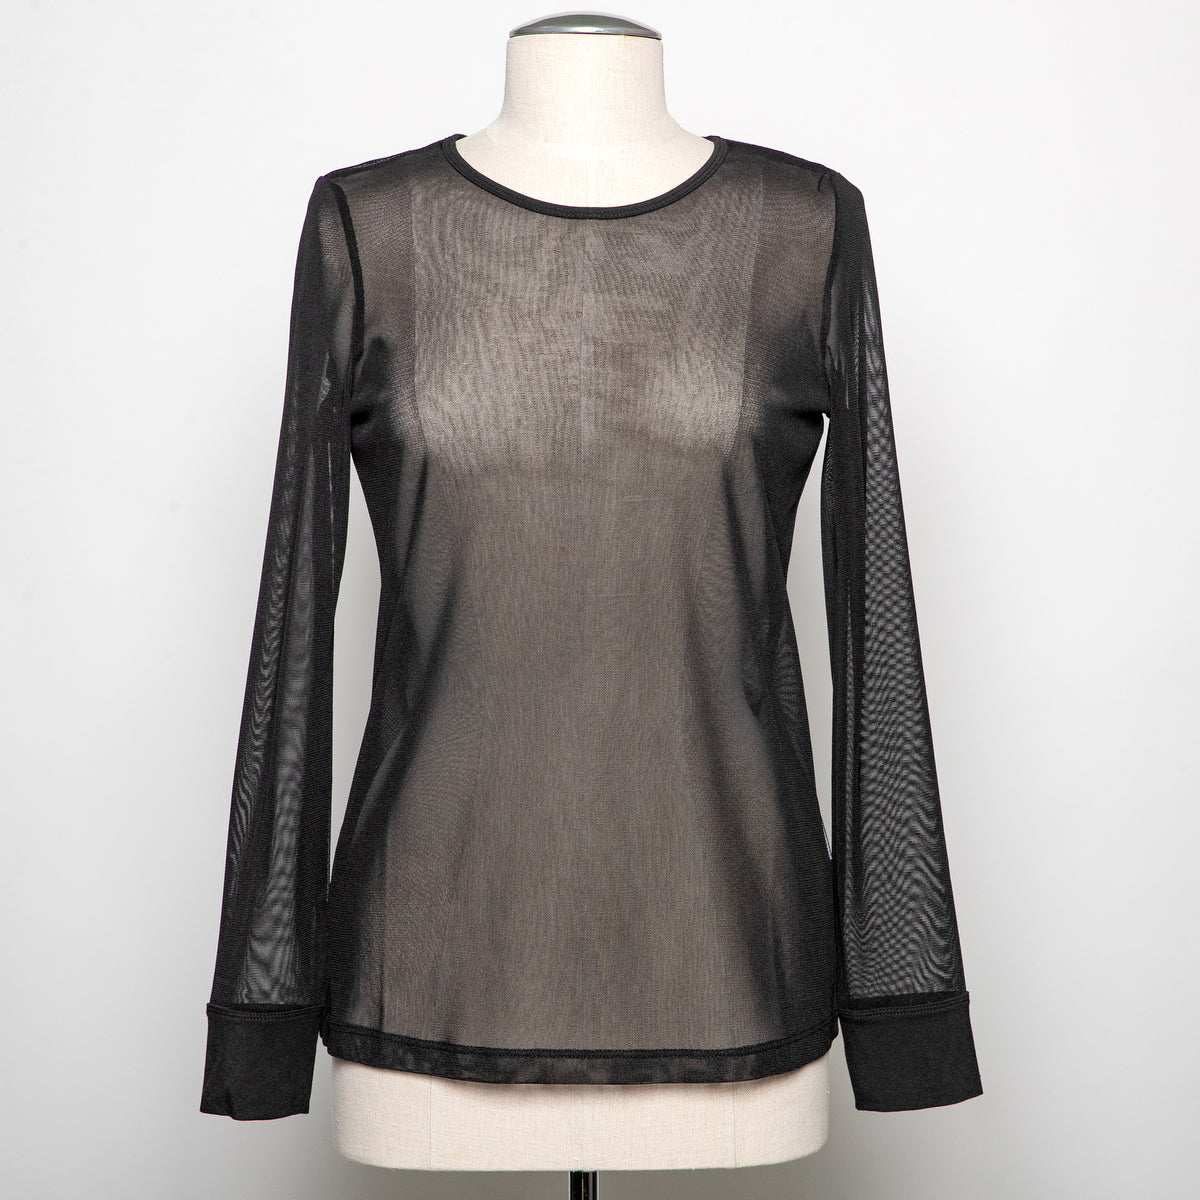 Ever Sassy Mesh Top in Black